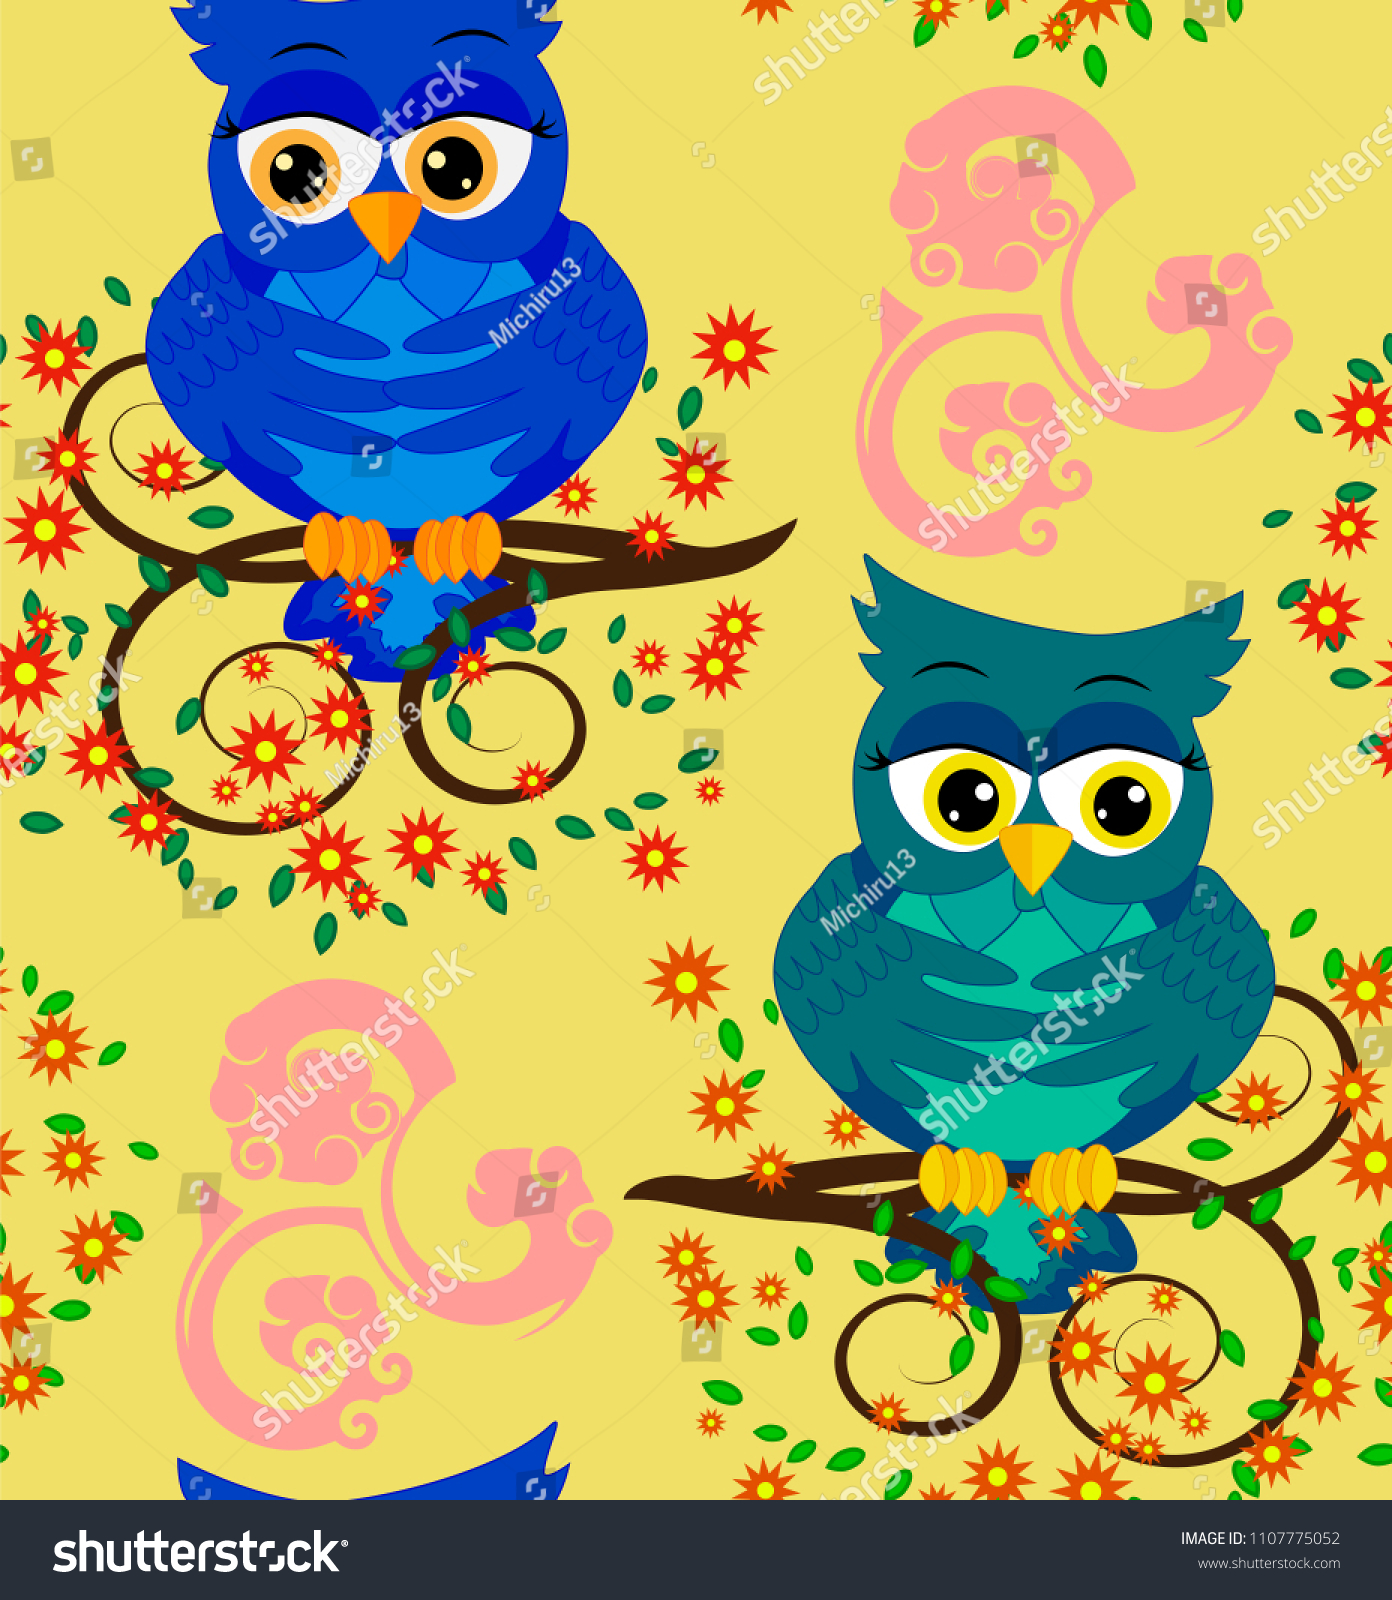 Cute Seamless Pattern With Owls And Stars In Pastel Colors